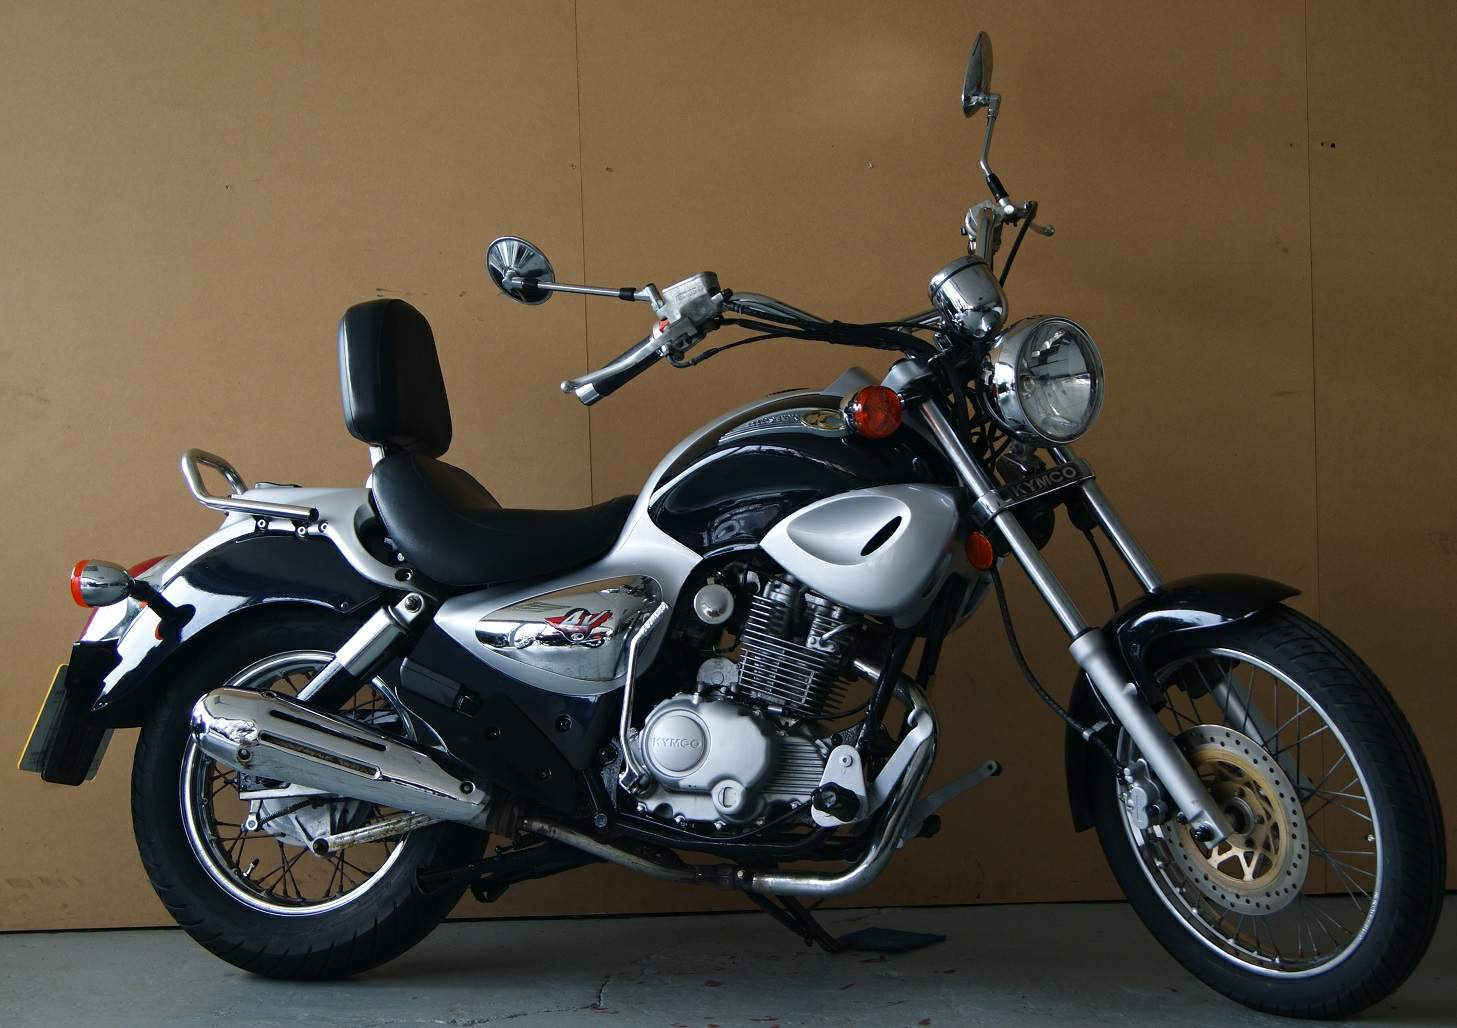 Kymco Hipster 125 2004 images #101536